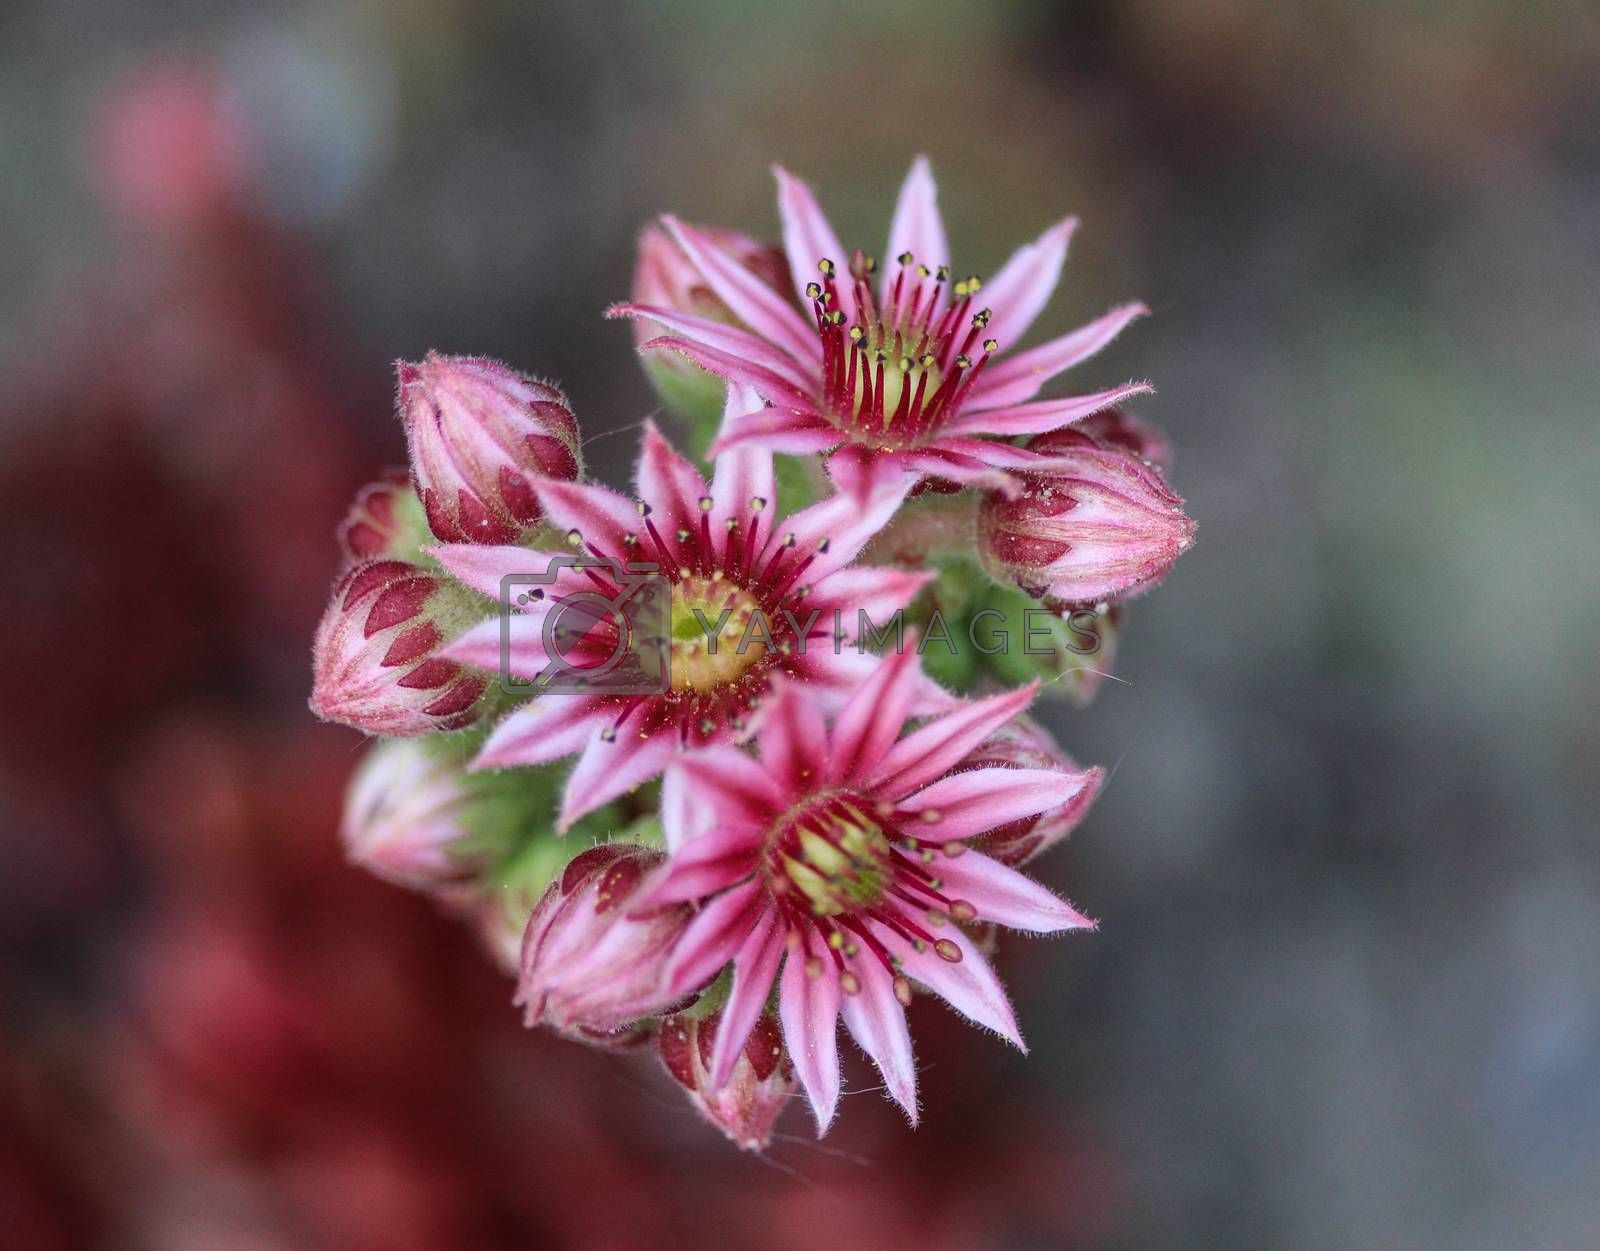 Royalty free image of common Houseleek (Sempervivum tectorum) flower, also known as Hens and Chicks, blooming during spring by michaelmeijer